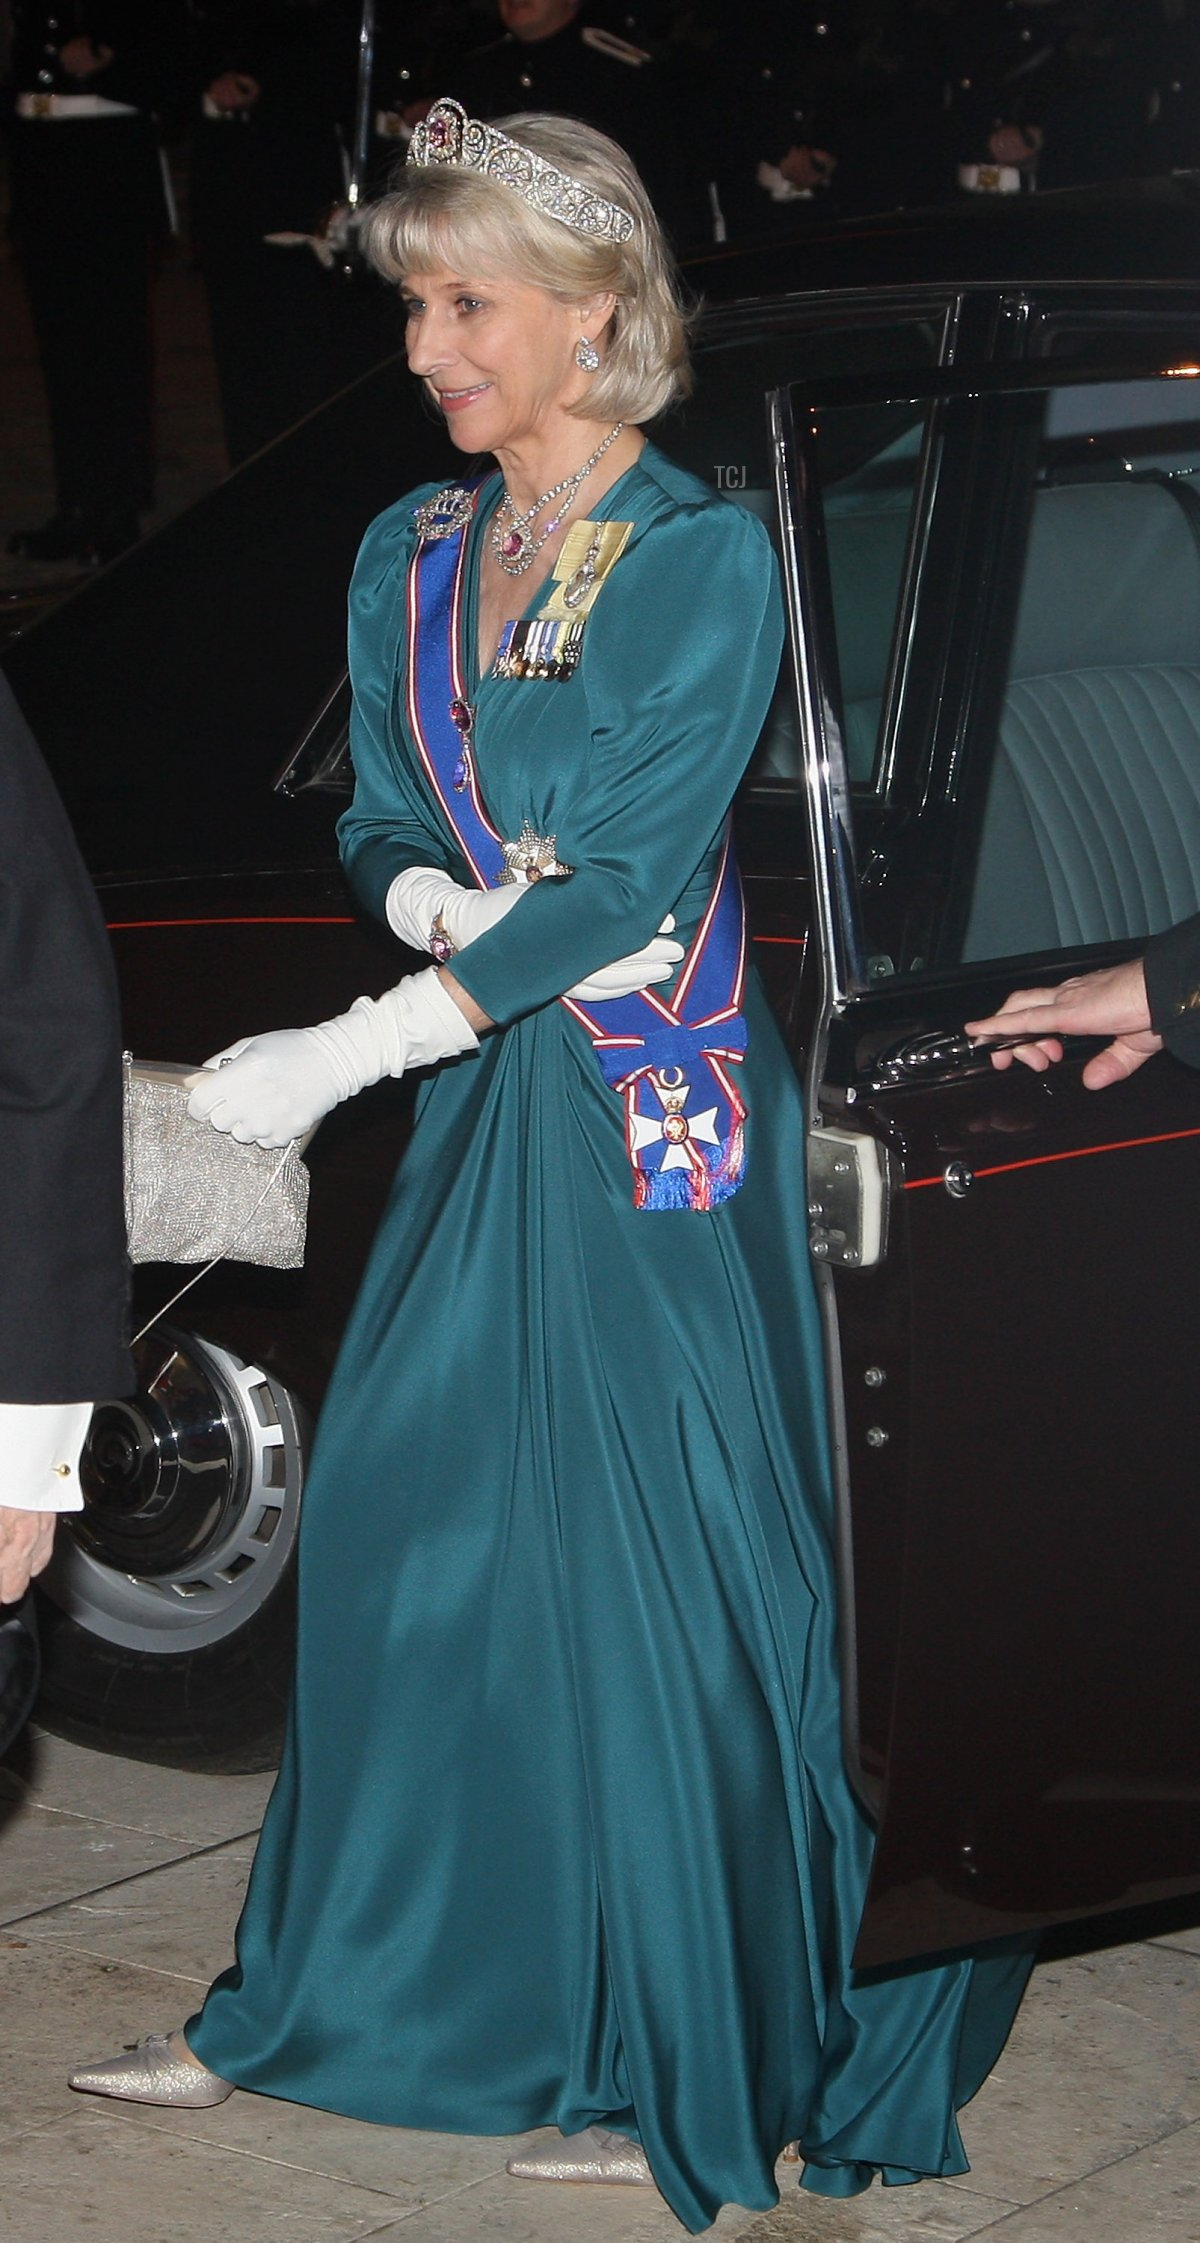 HRH the Duchess of Gloucester arrives at the Guildhall for a banquet on the second official day of the President of India's State Visit on October 27, 2009 in London, England